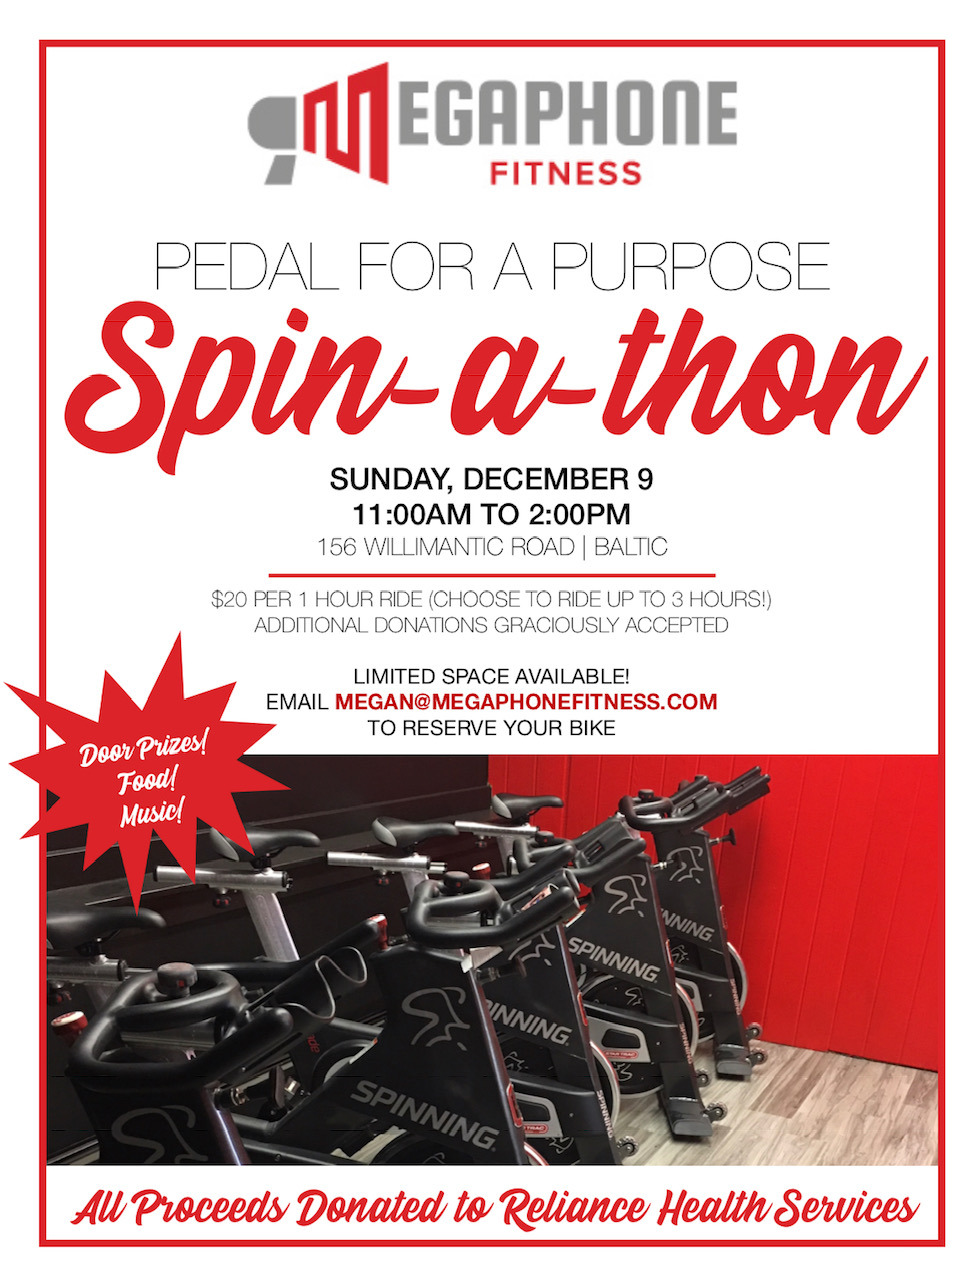 Megaphone Fitness hosts Pedal for a Purpose SPIN-A-THON